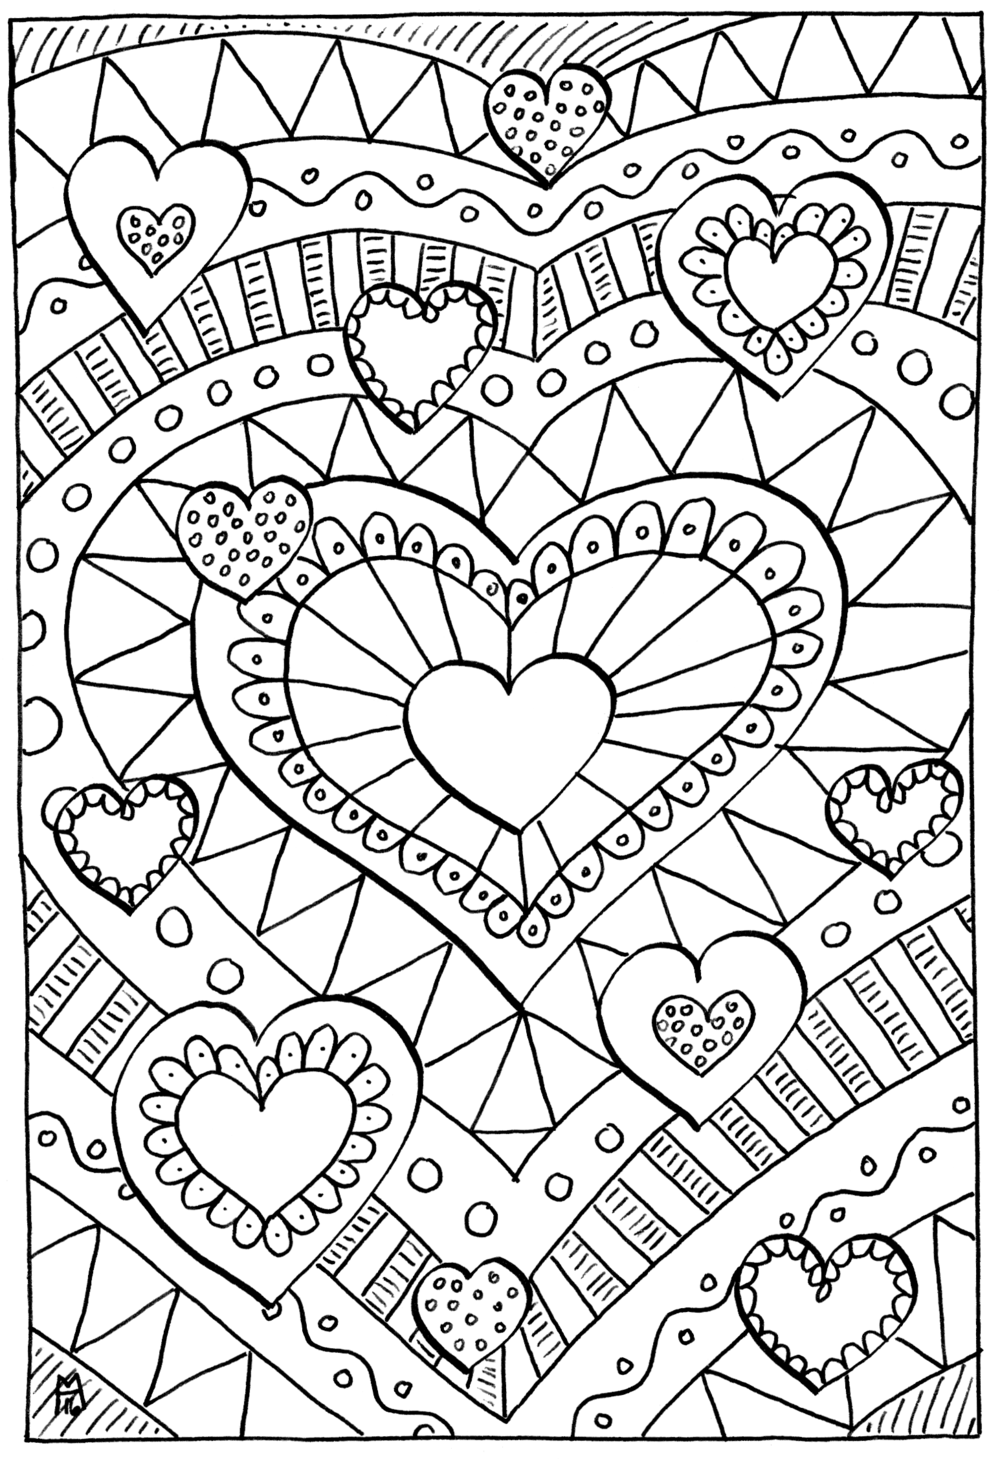 free pictures coloring pages - photo#1